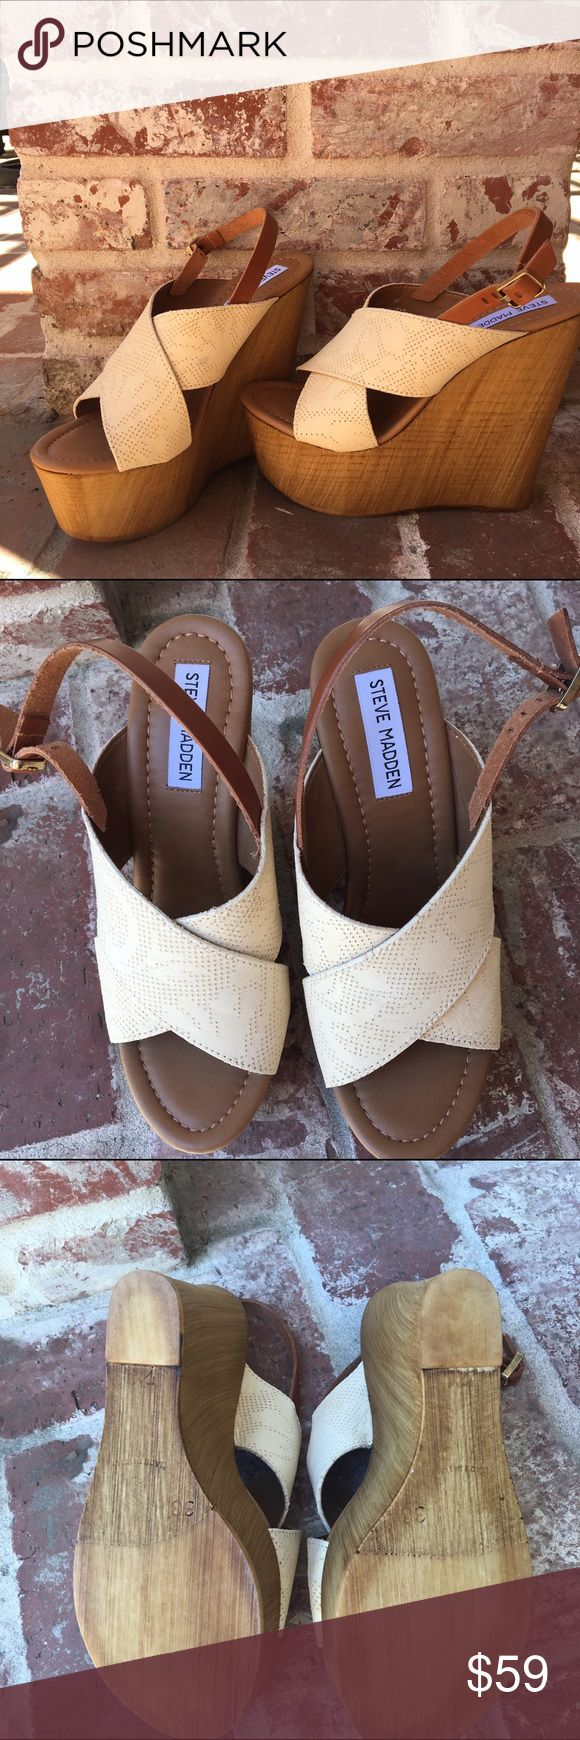 🎉 NWOT Steve Madden platform wedges!!!! On Sale to cover your shipping!!!! Cream platforms with faux wooden wedges, size 8. Never been worn! Steve Madden Shoes Wedges